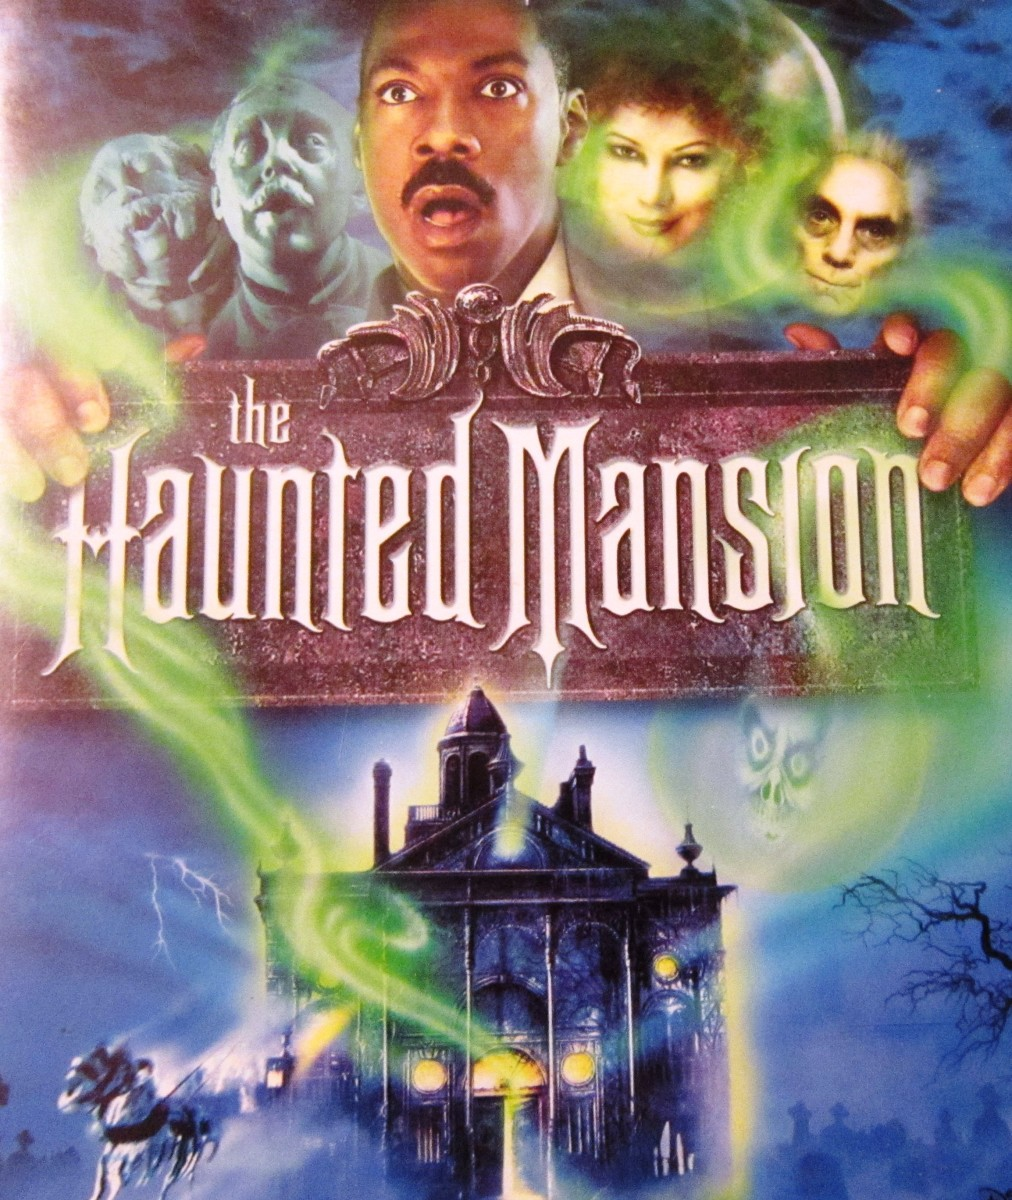 The Haunted Mansion combines thrills and humor for a family-friendly movie that fits just right in the Halloween genre.